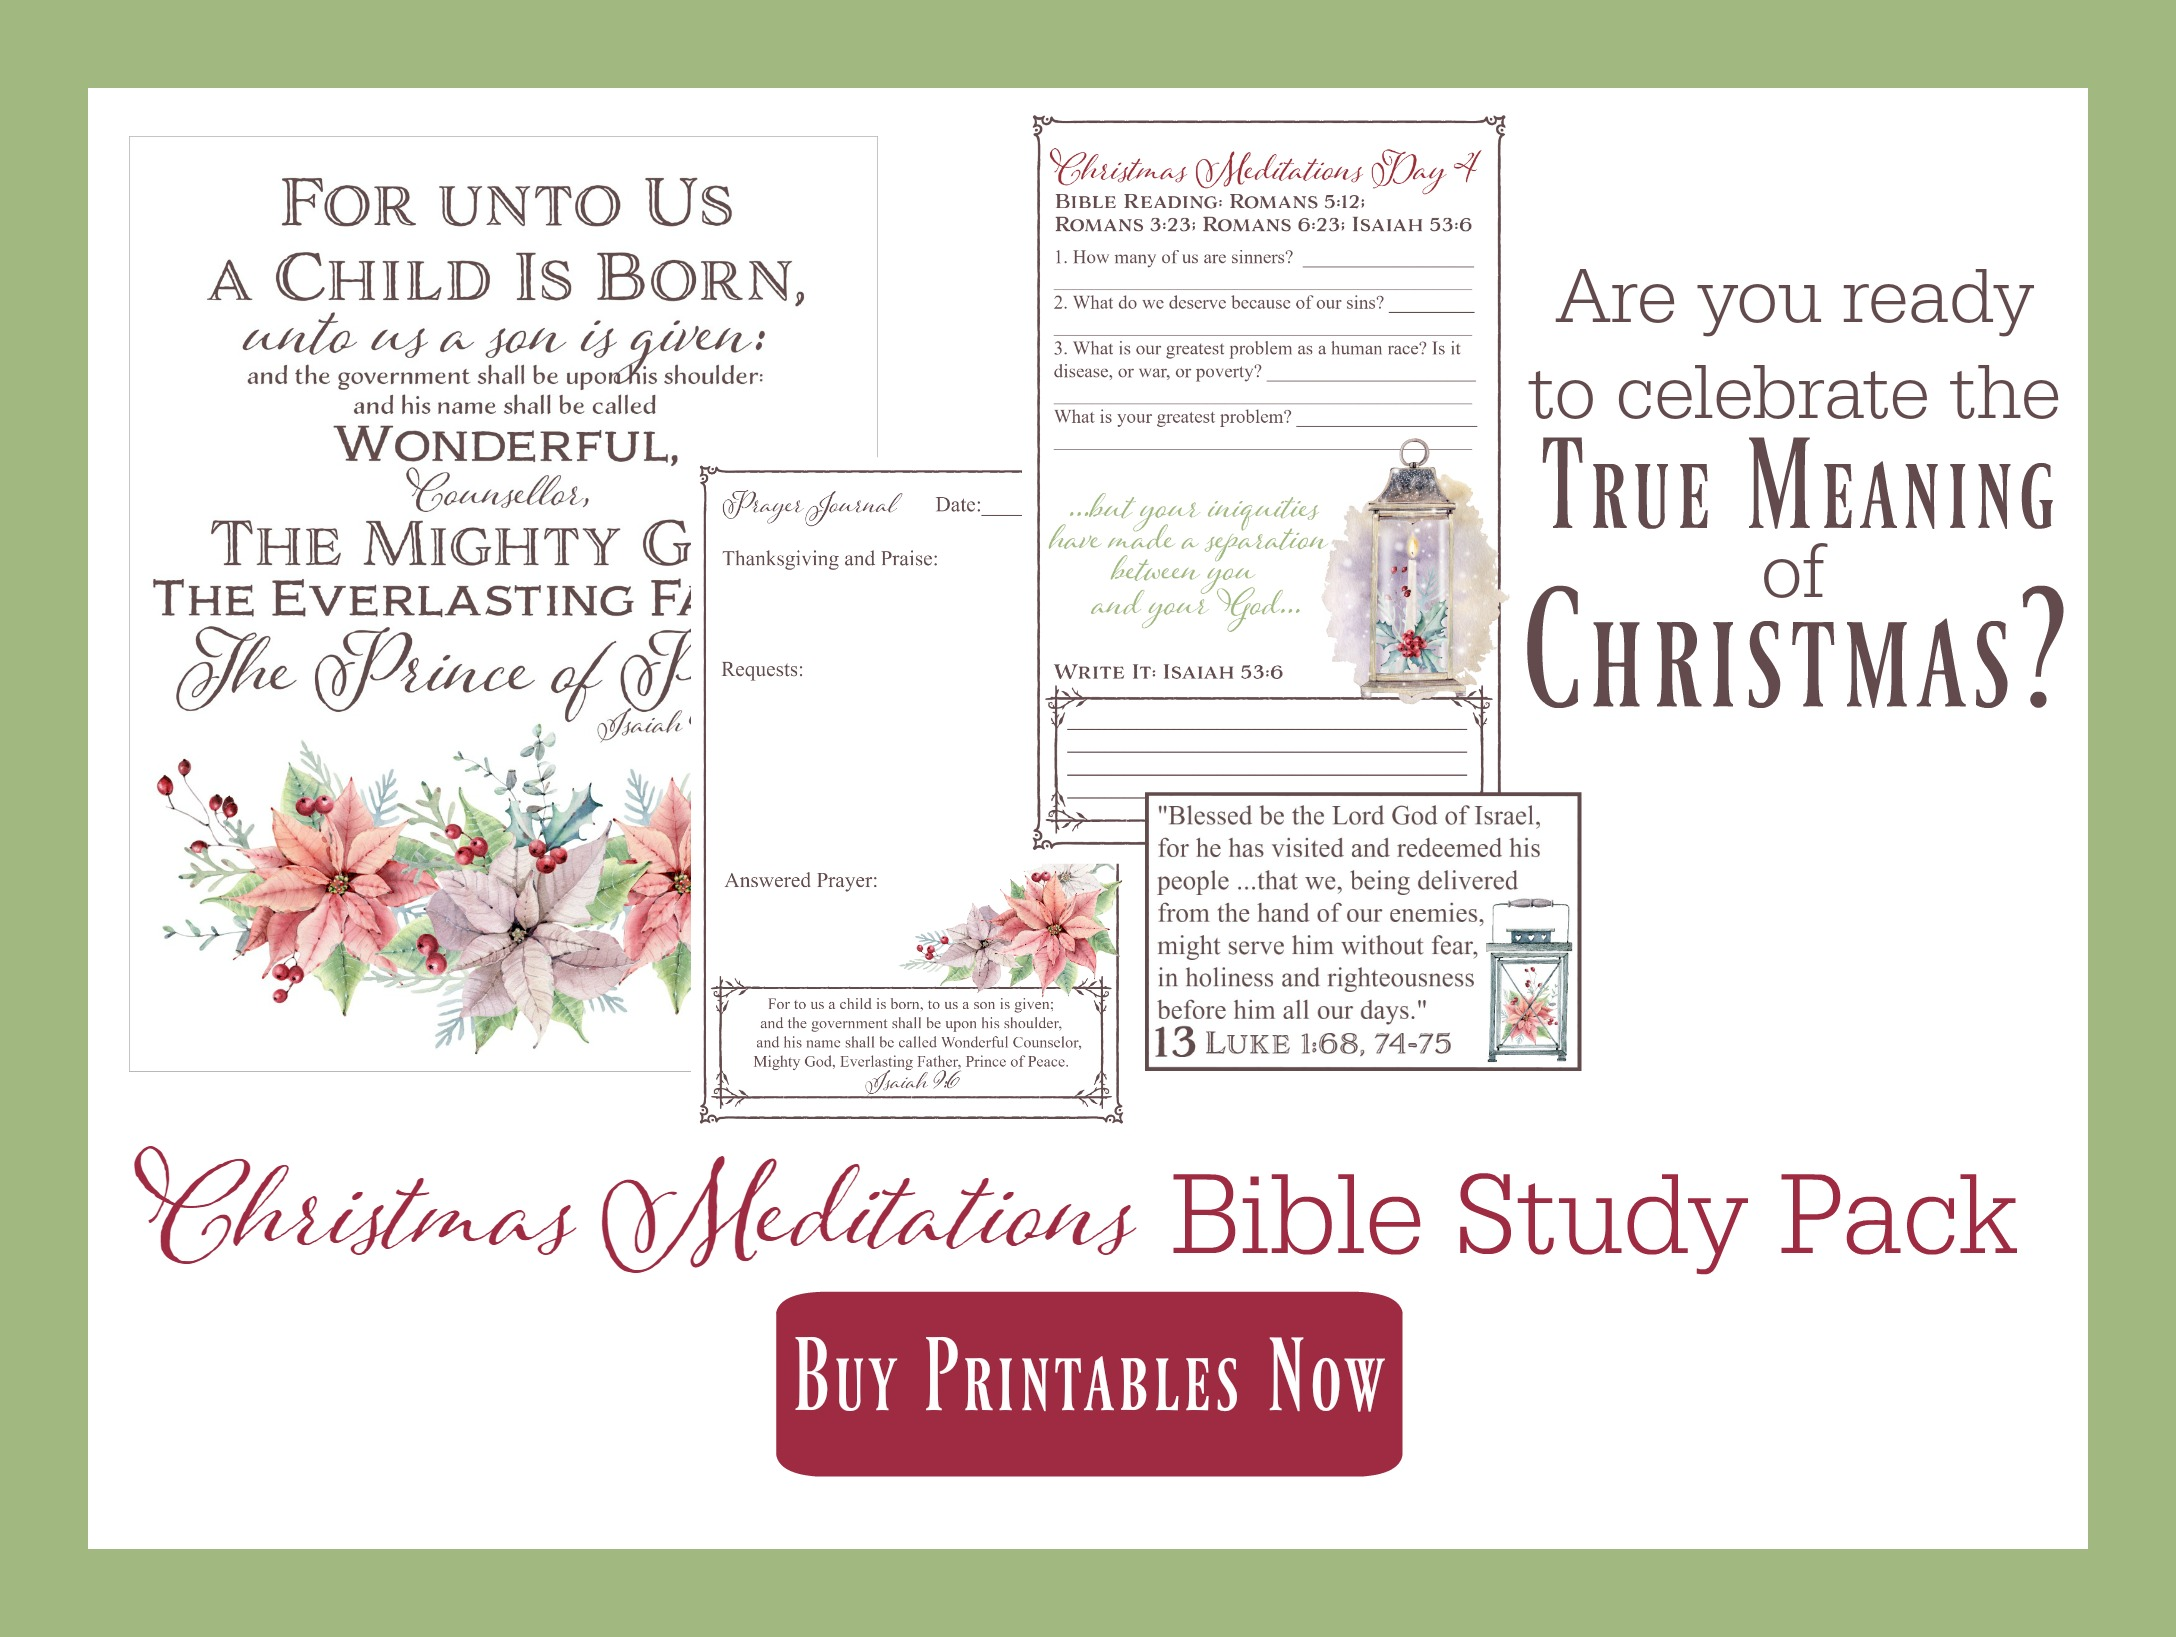 christmas-mediations-image-1